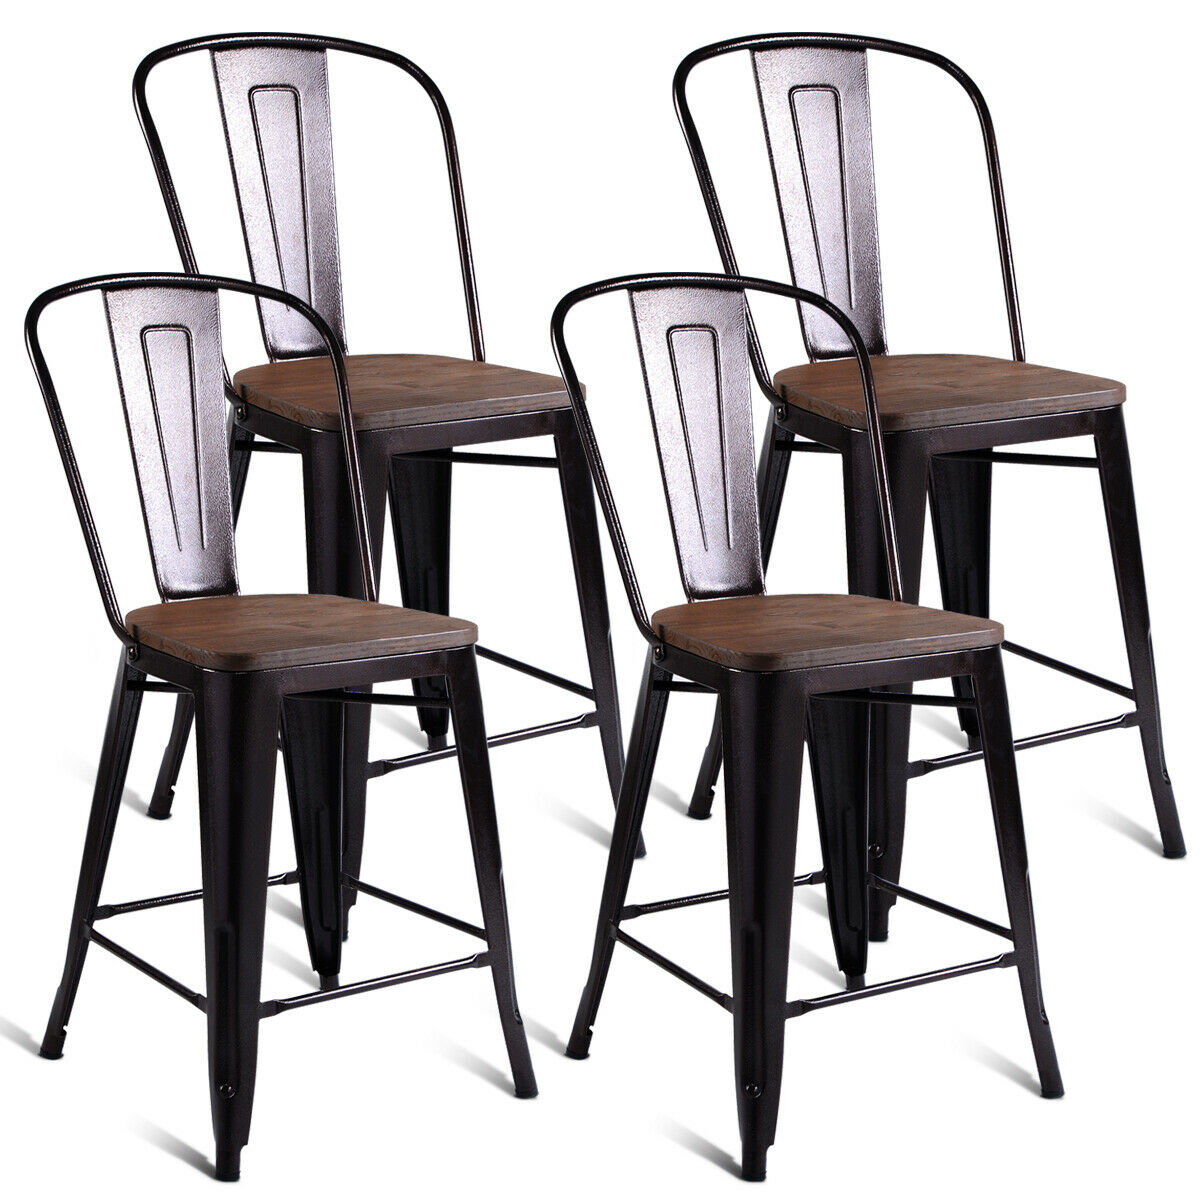 Costway Copper Set Of 4 Metal Wood Counter Stool Kitchen Dining Bar Chairs Rustic